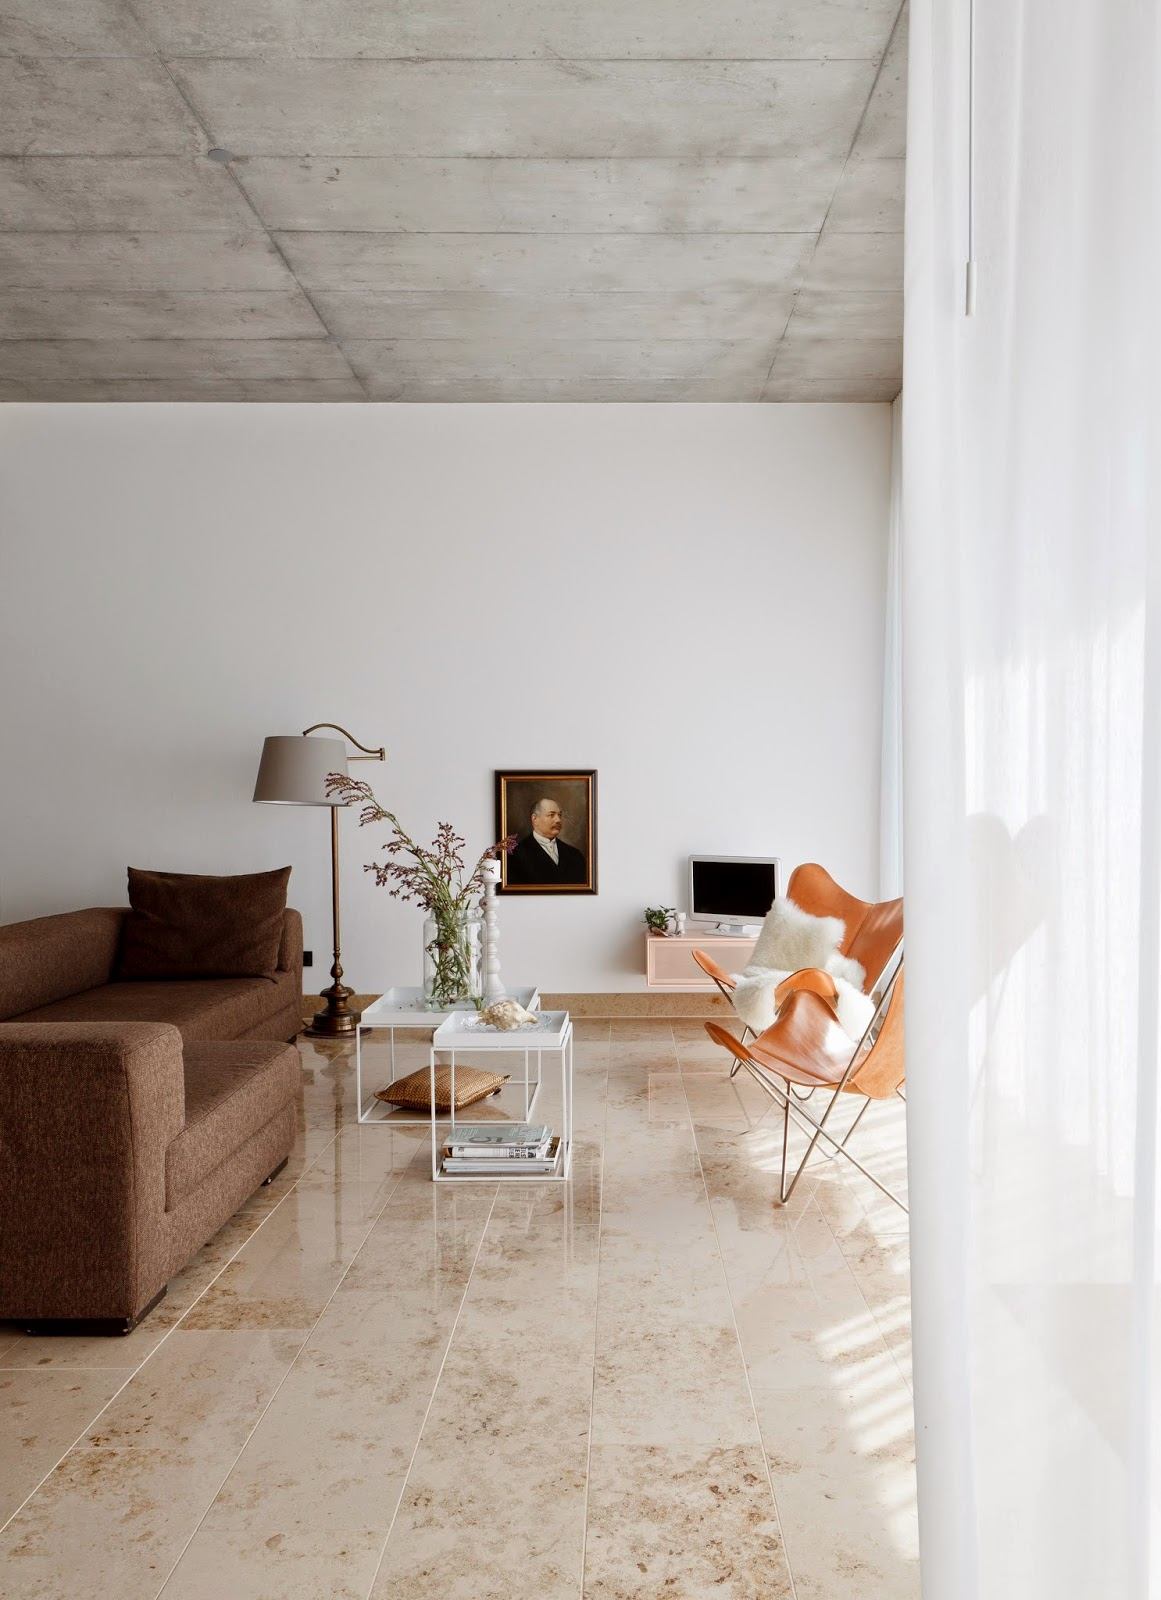 Home tour Una casa en tonos neutros - A neutral tones house_04